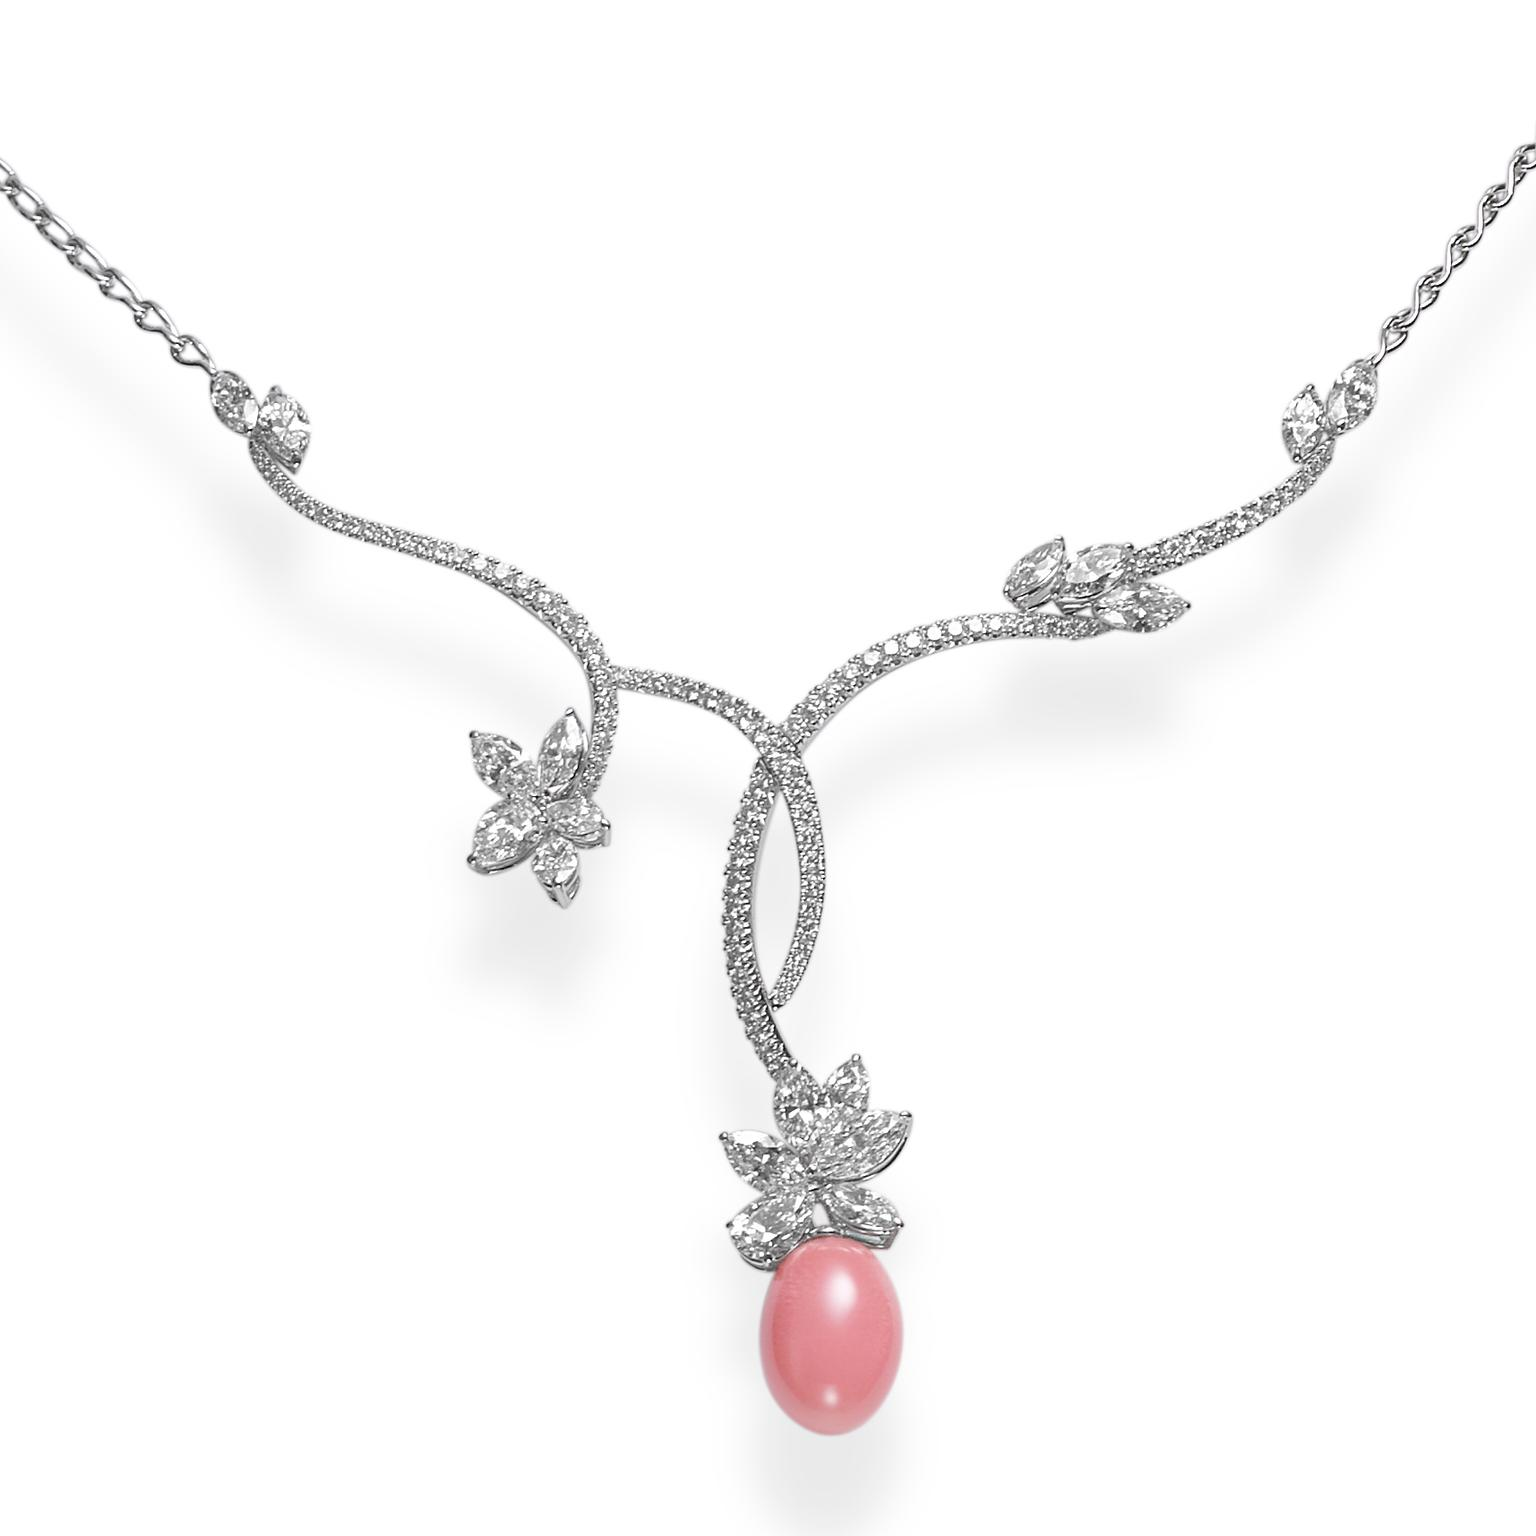 Mikimoto conch pearl necklace